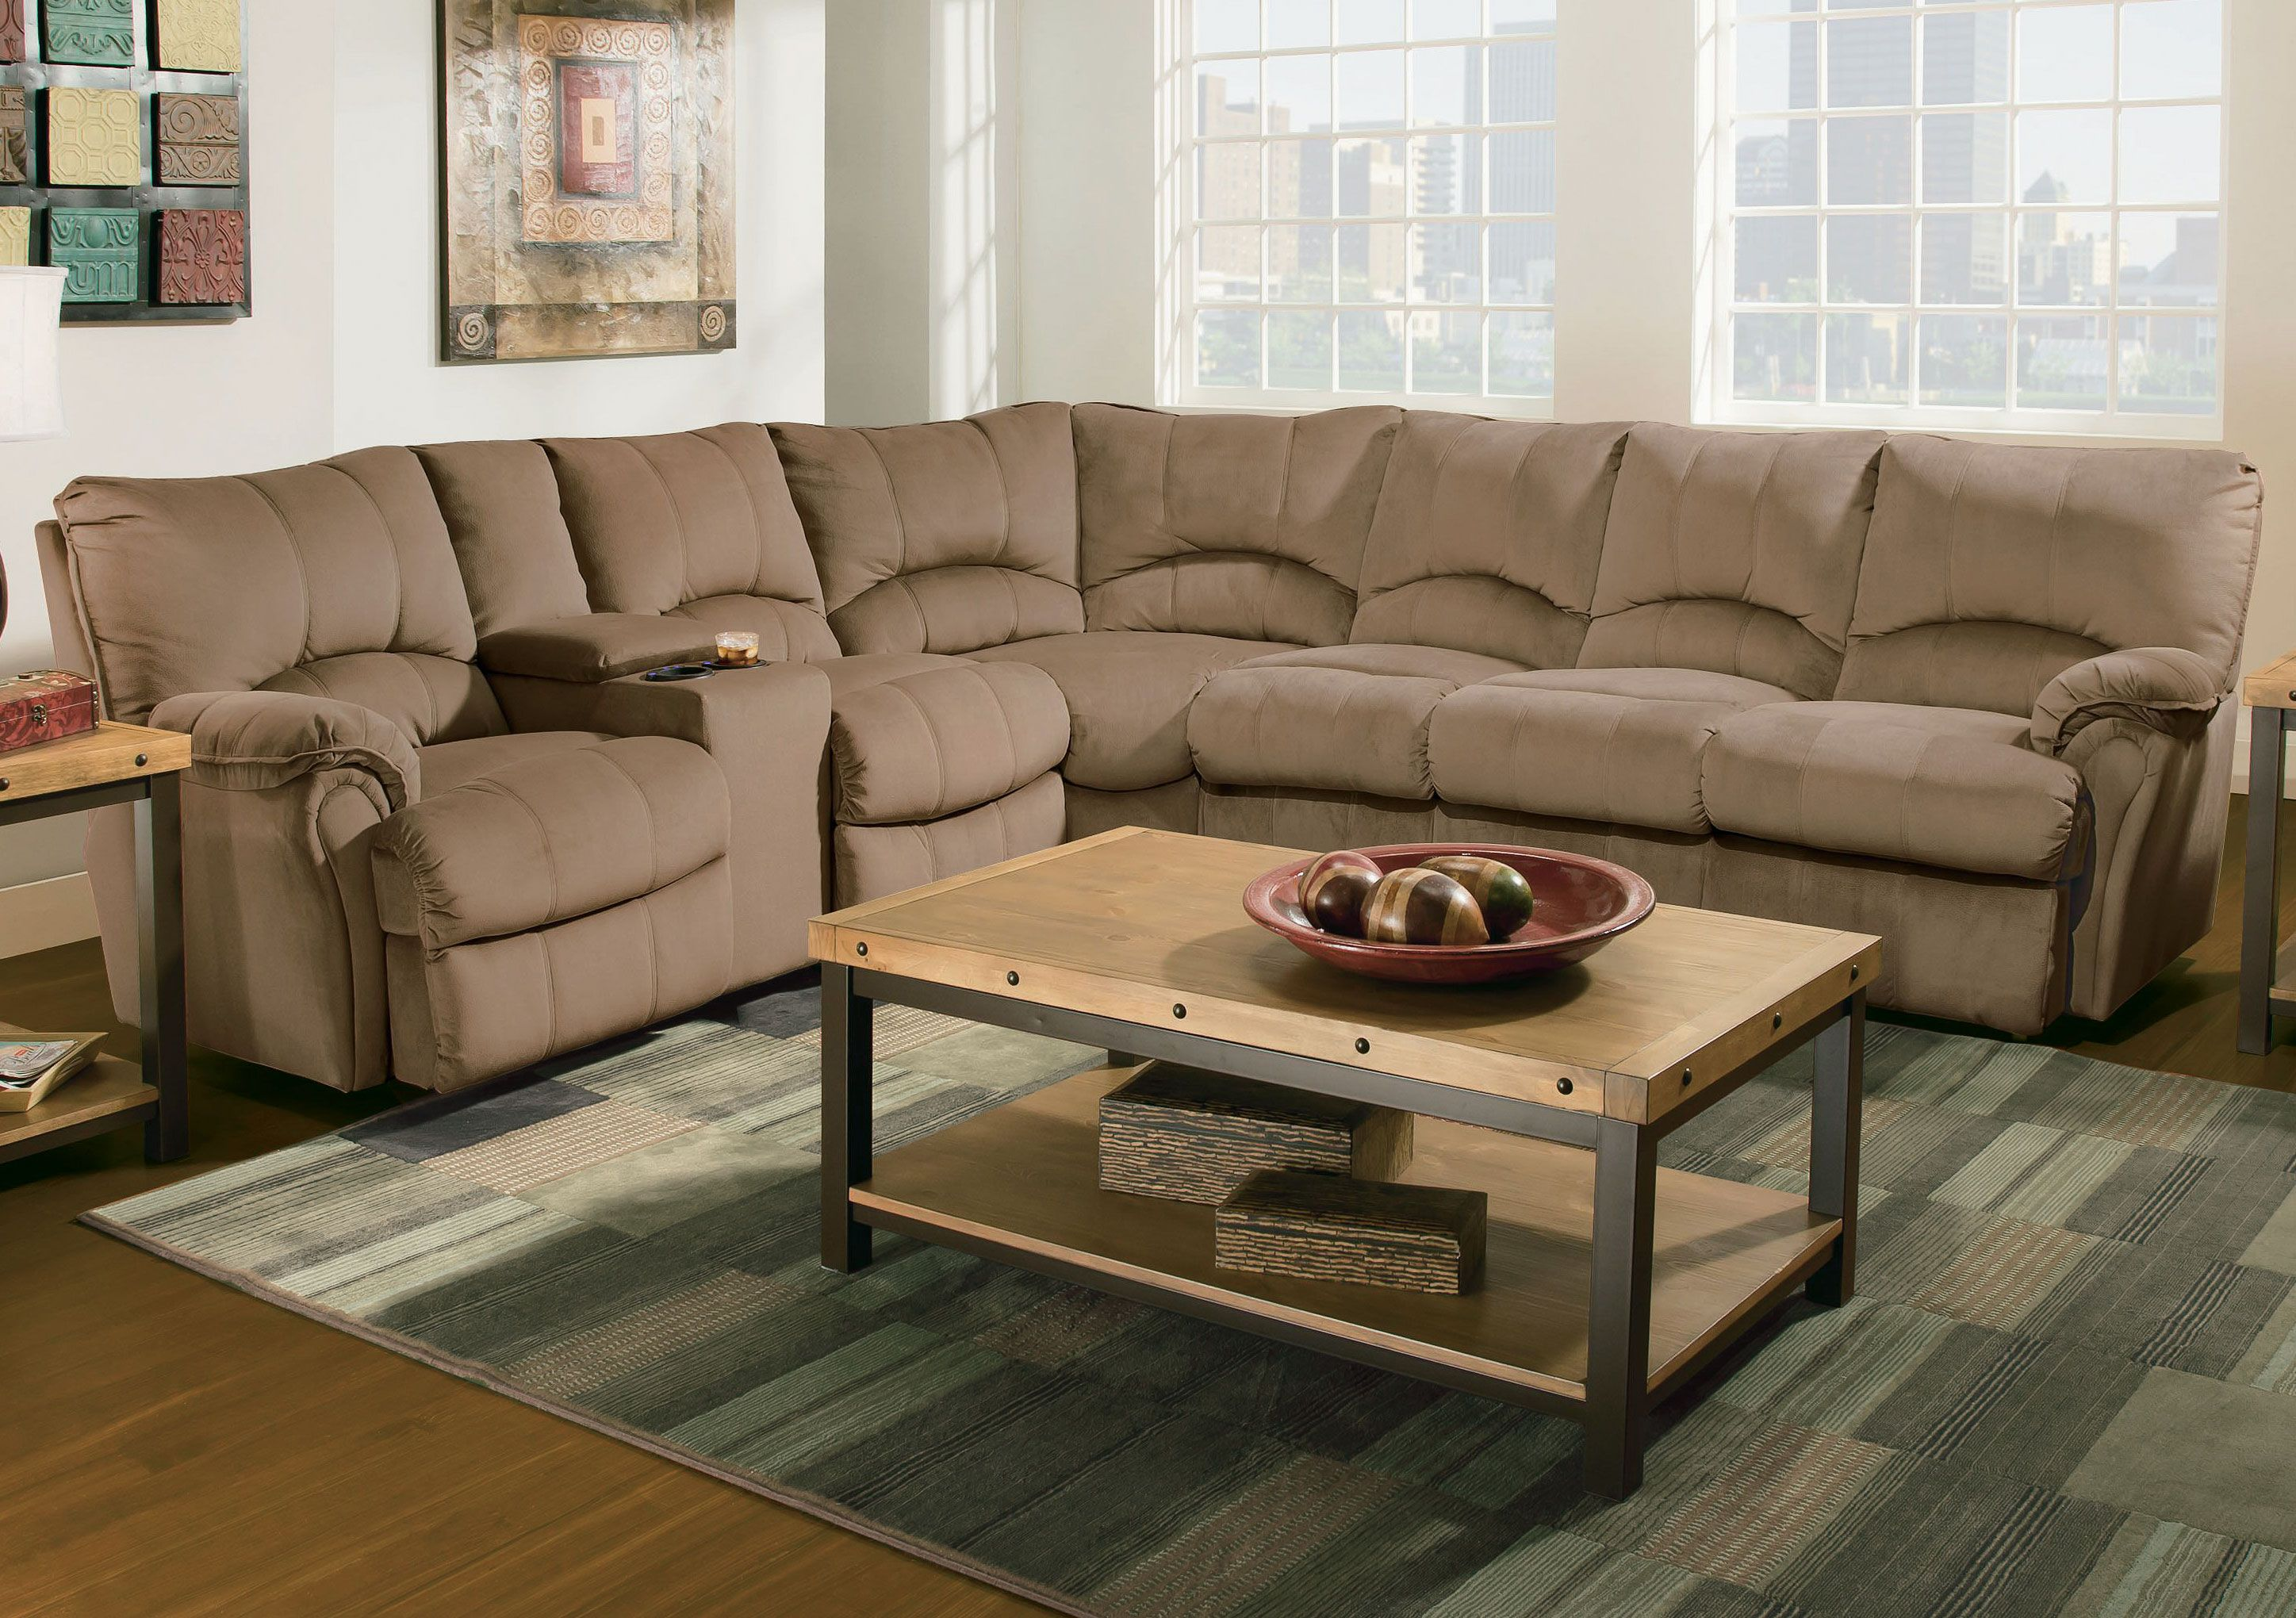 Grand Home Furnishings Modern Sofa Sectional Reclining Sectional Power Reclining Sectional Sofa